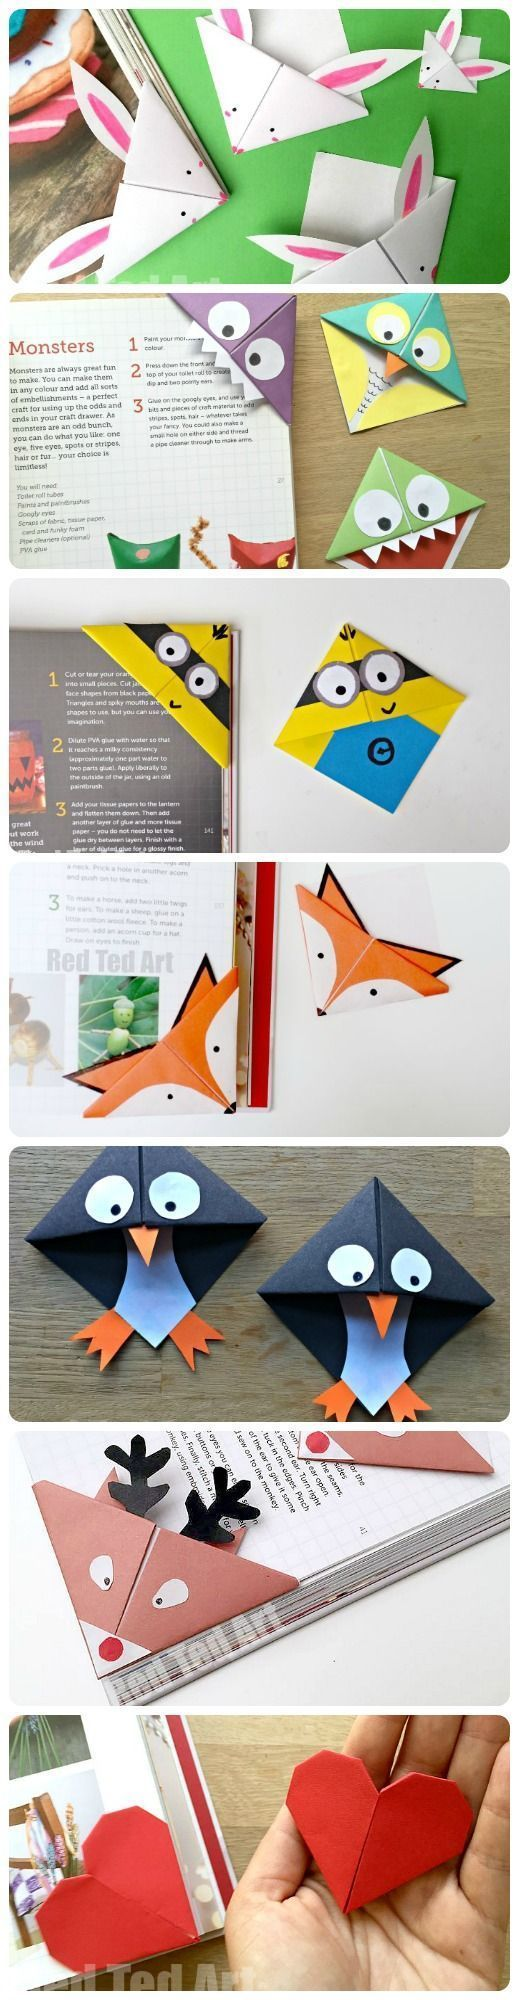 We adore making Bookmarks and these corner